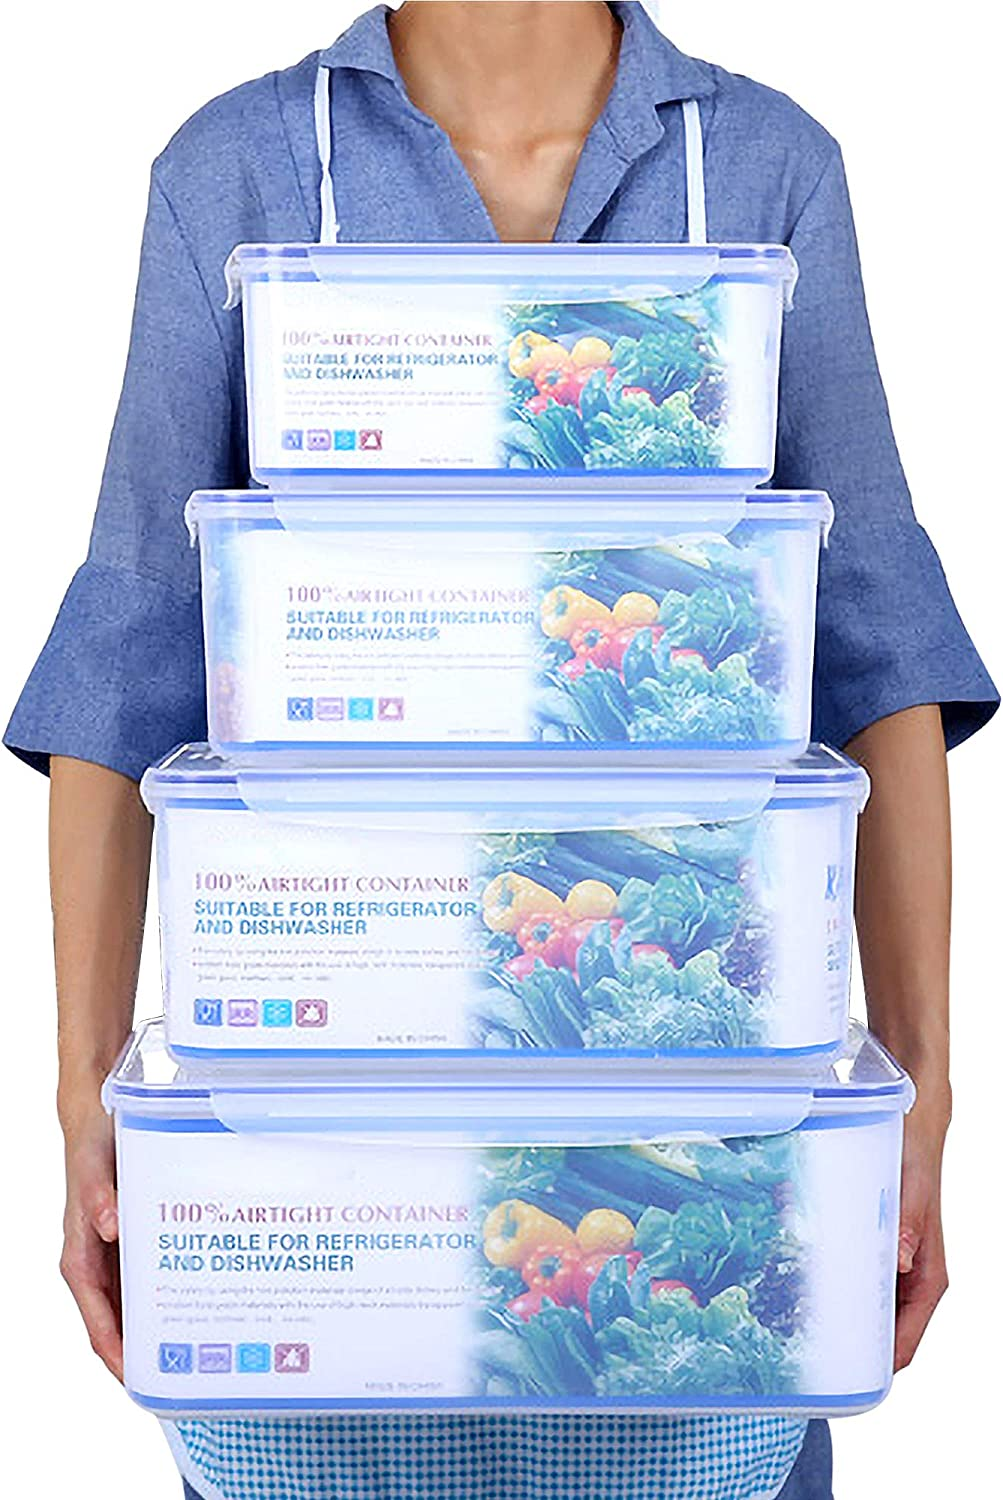 Large Size Food Storage Containers Set with Lids, 20 Quart, Set of 4 Plastic Freezer Containers for Food with Leak Proof and Airtight Lids, BPA Free and Stackable Kitchen Food Prep Containers